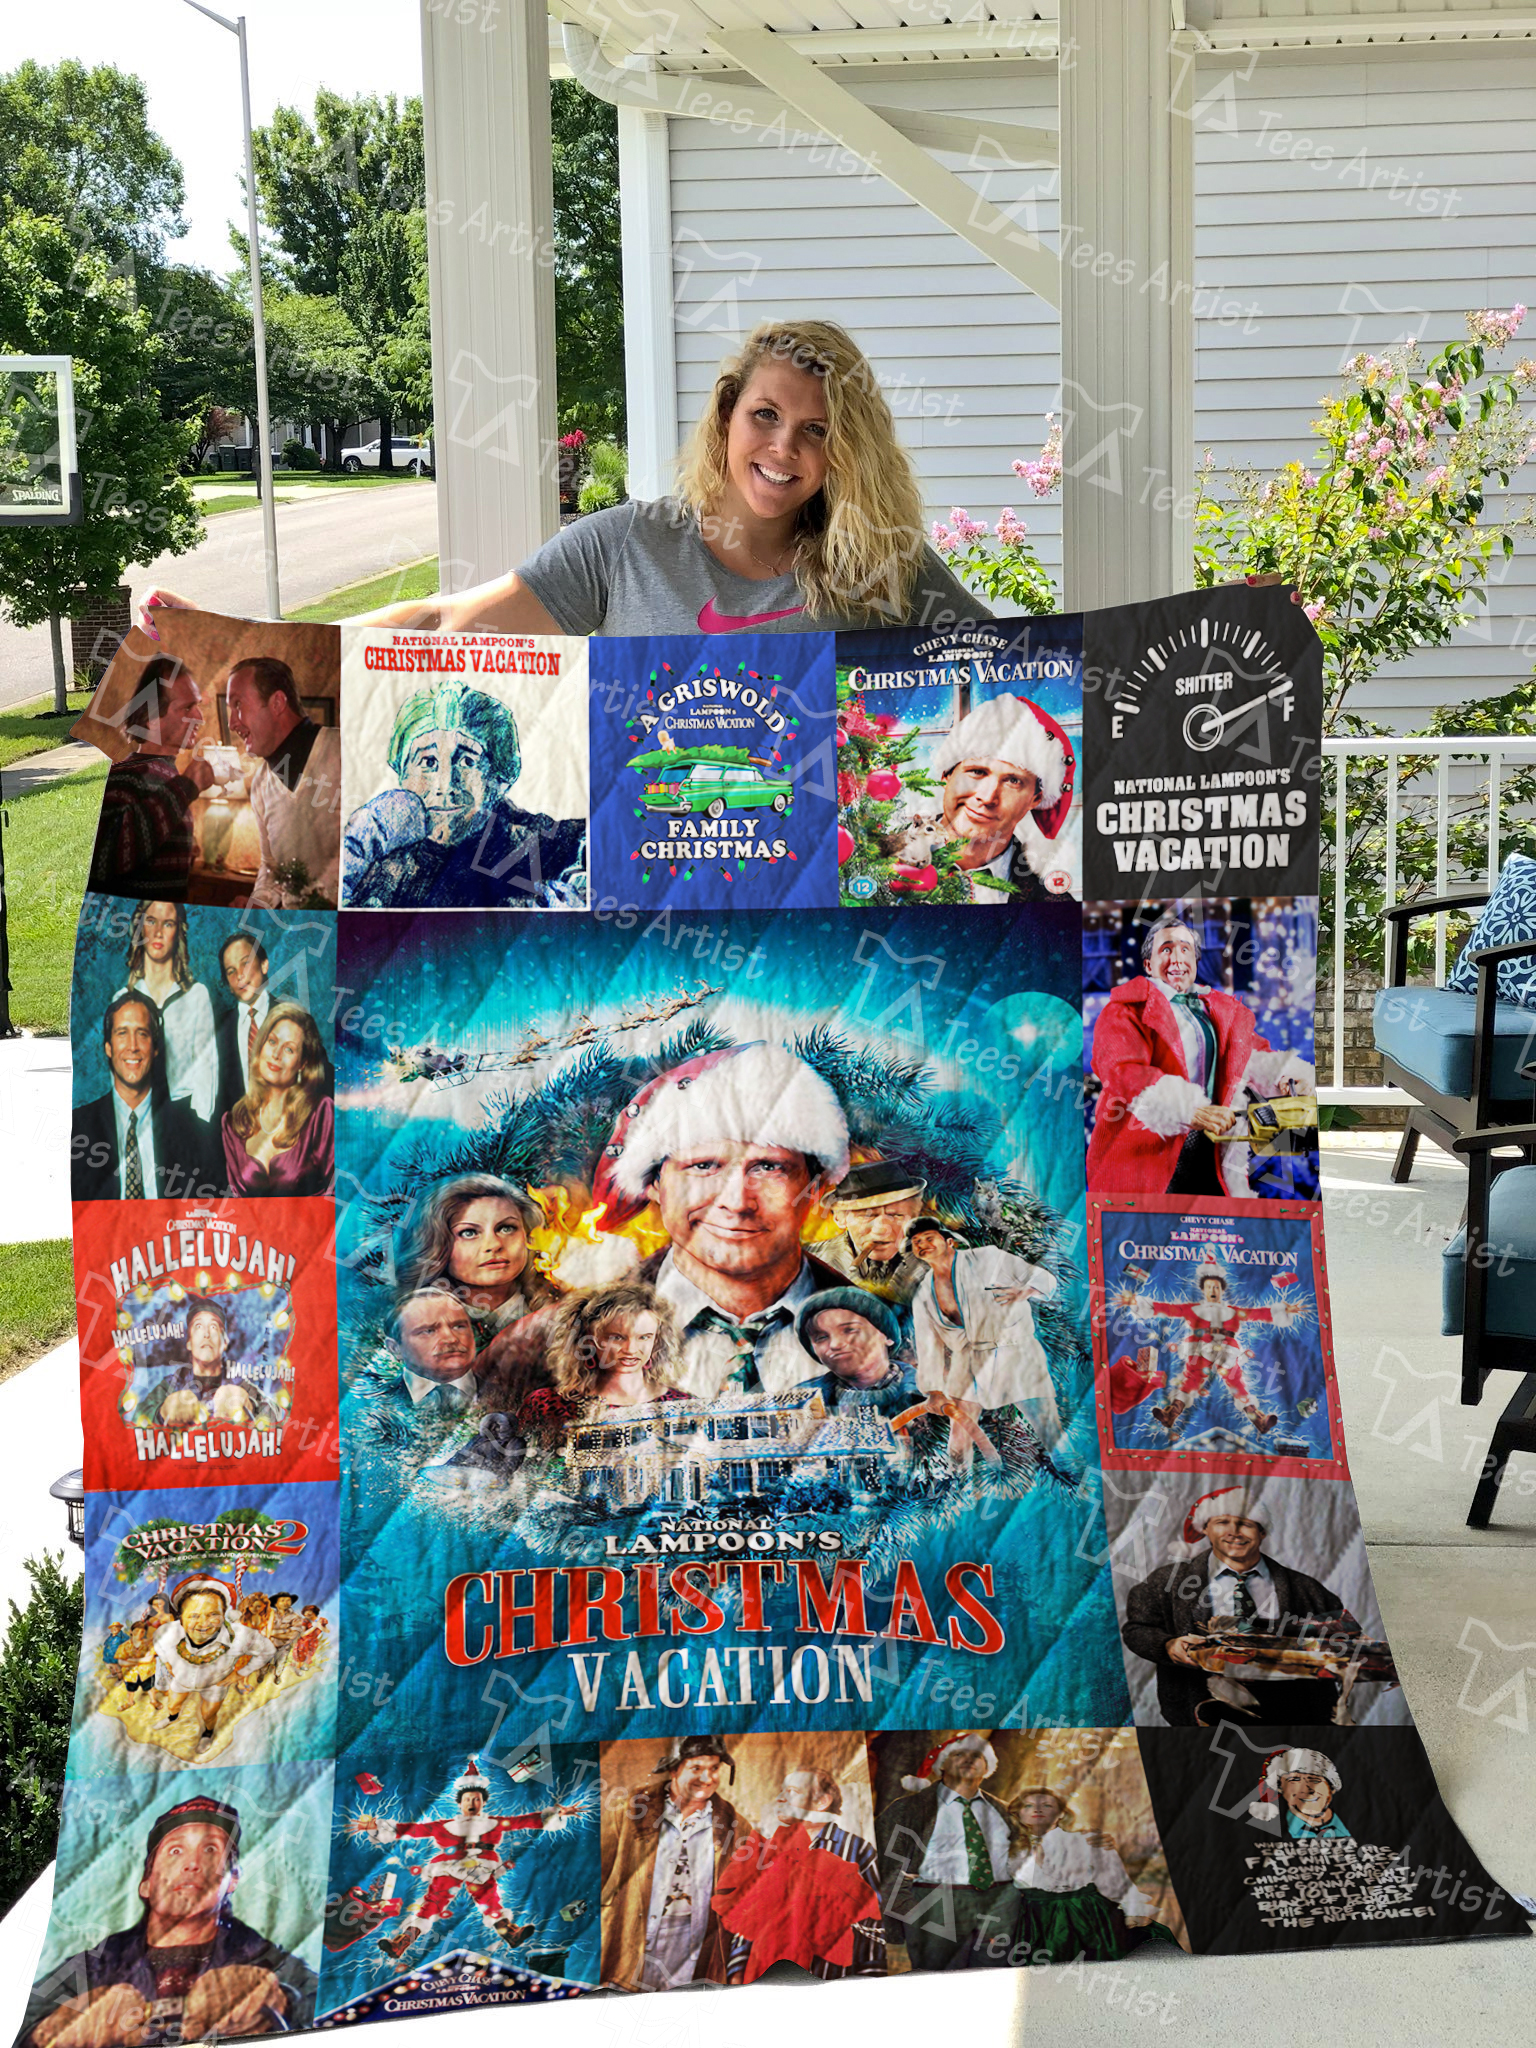 Christmas Vacation Hallelujah.National Lampoon S Christmas Vacation Quilt Blanket 0657